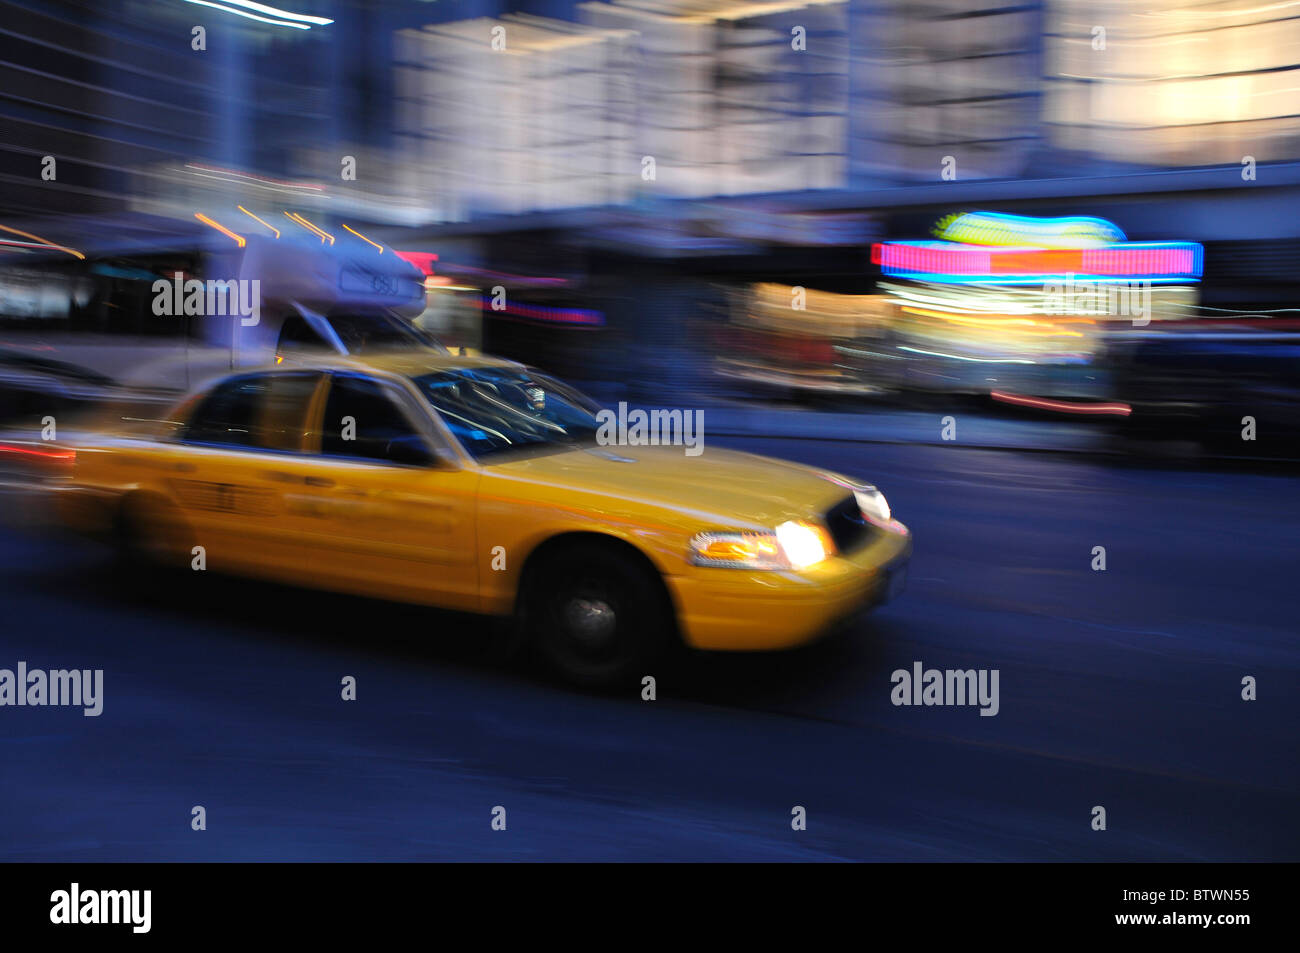 Taxicab rushing down a city street at night in a blur - Stock Image